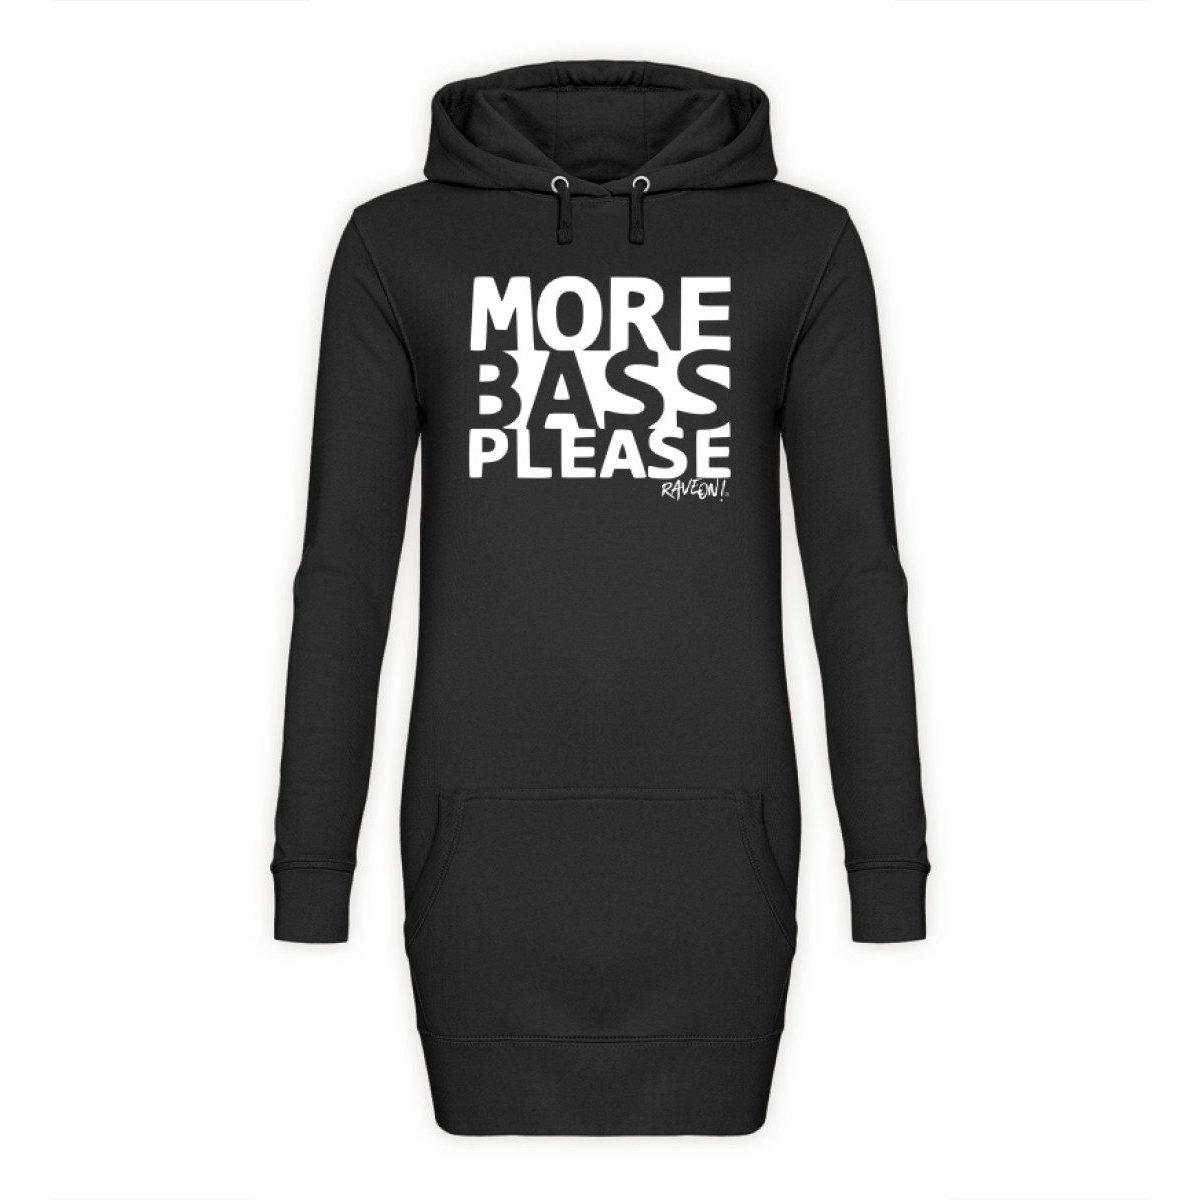 MORE BASS PLEASE! - Rave On!® - Damen Hoodie-Kleid Hoodie-Kleid Jet Black / S - Rave On!® der Club & Techno Szene Shop für Coole Junge Mode Streetwear Style & Fashion Outfits + Sexy Festival 420 Stuff